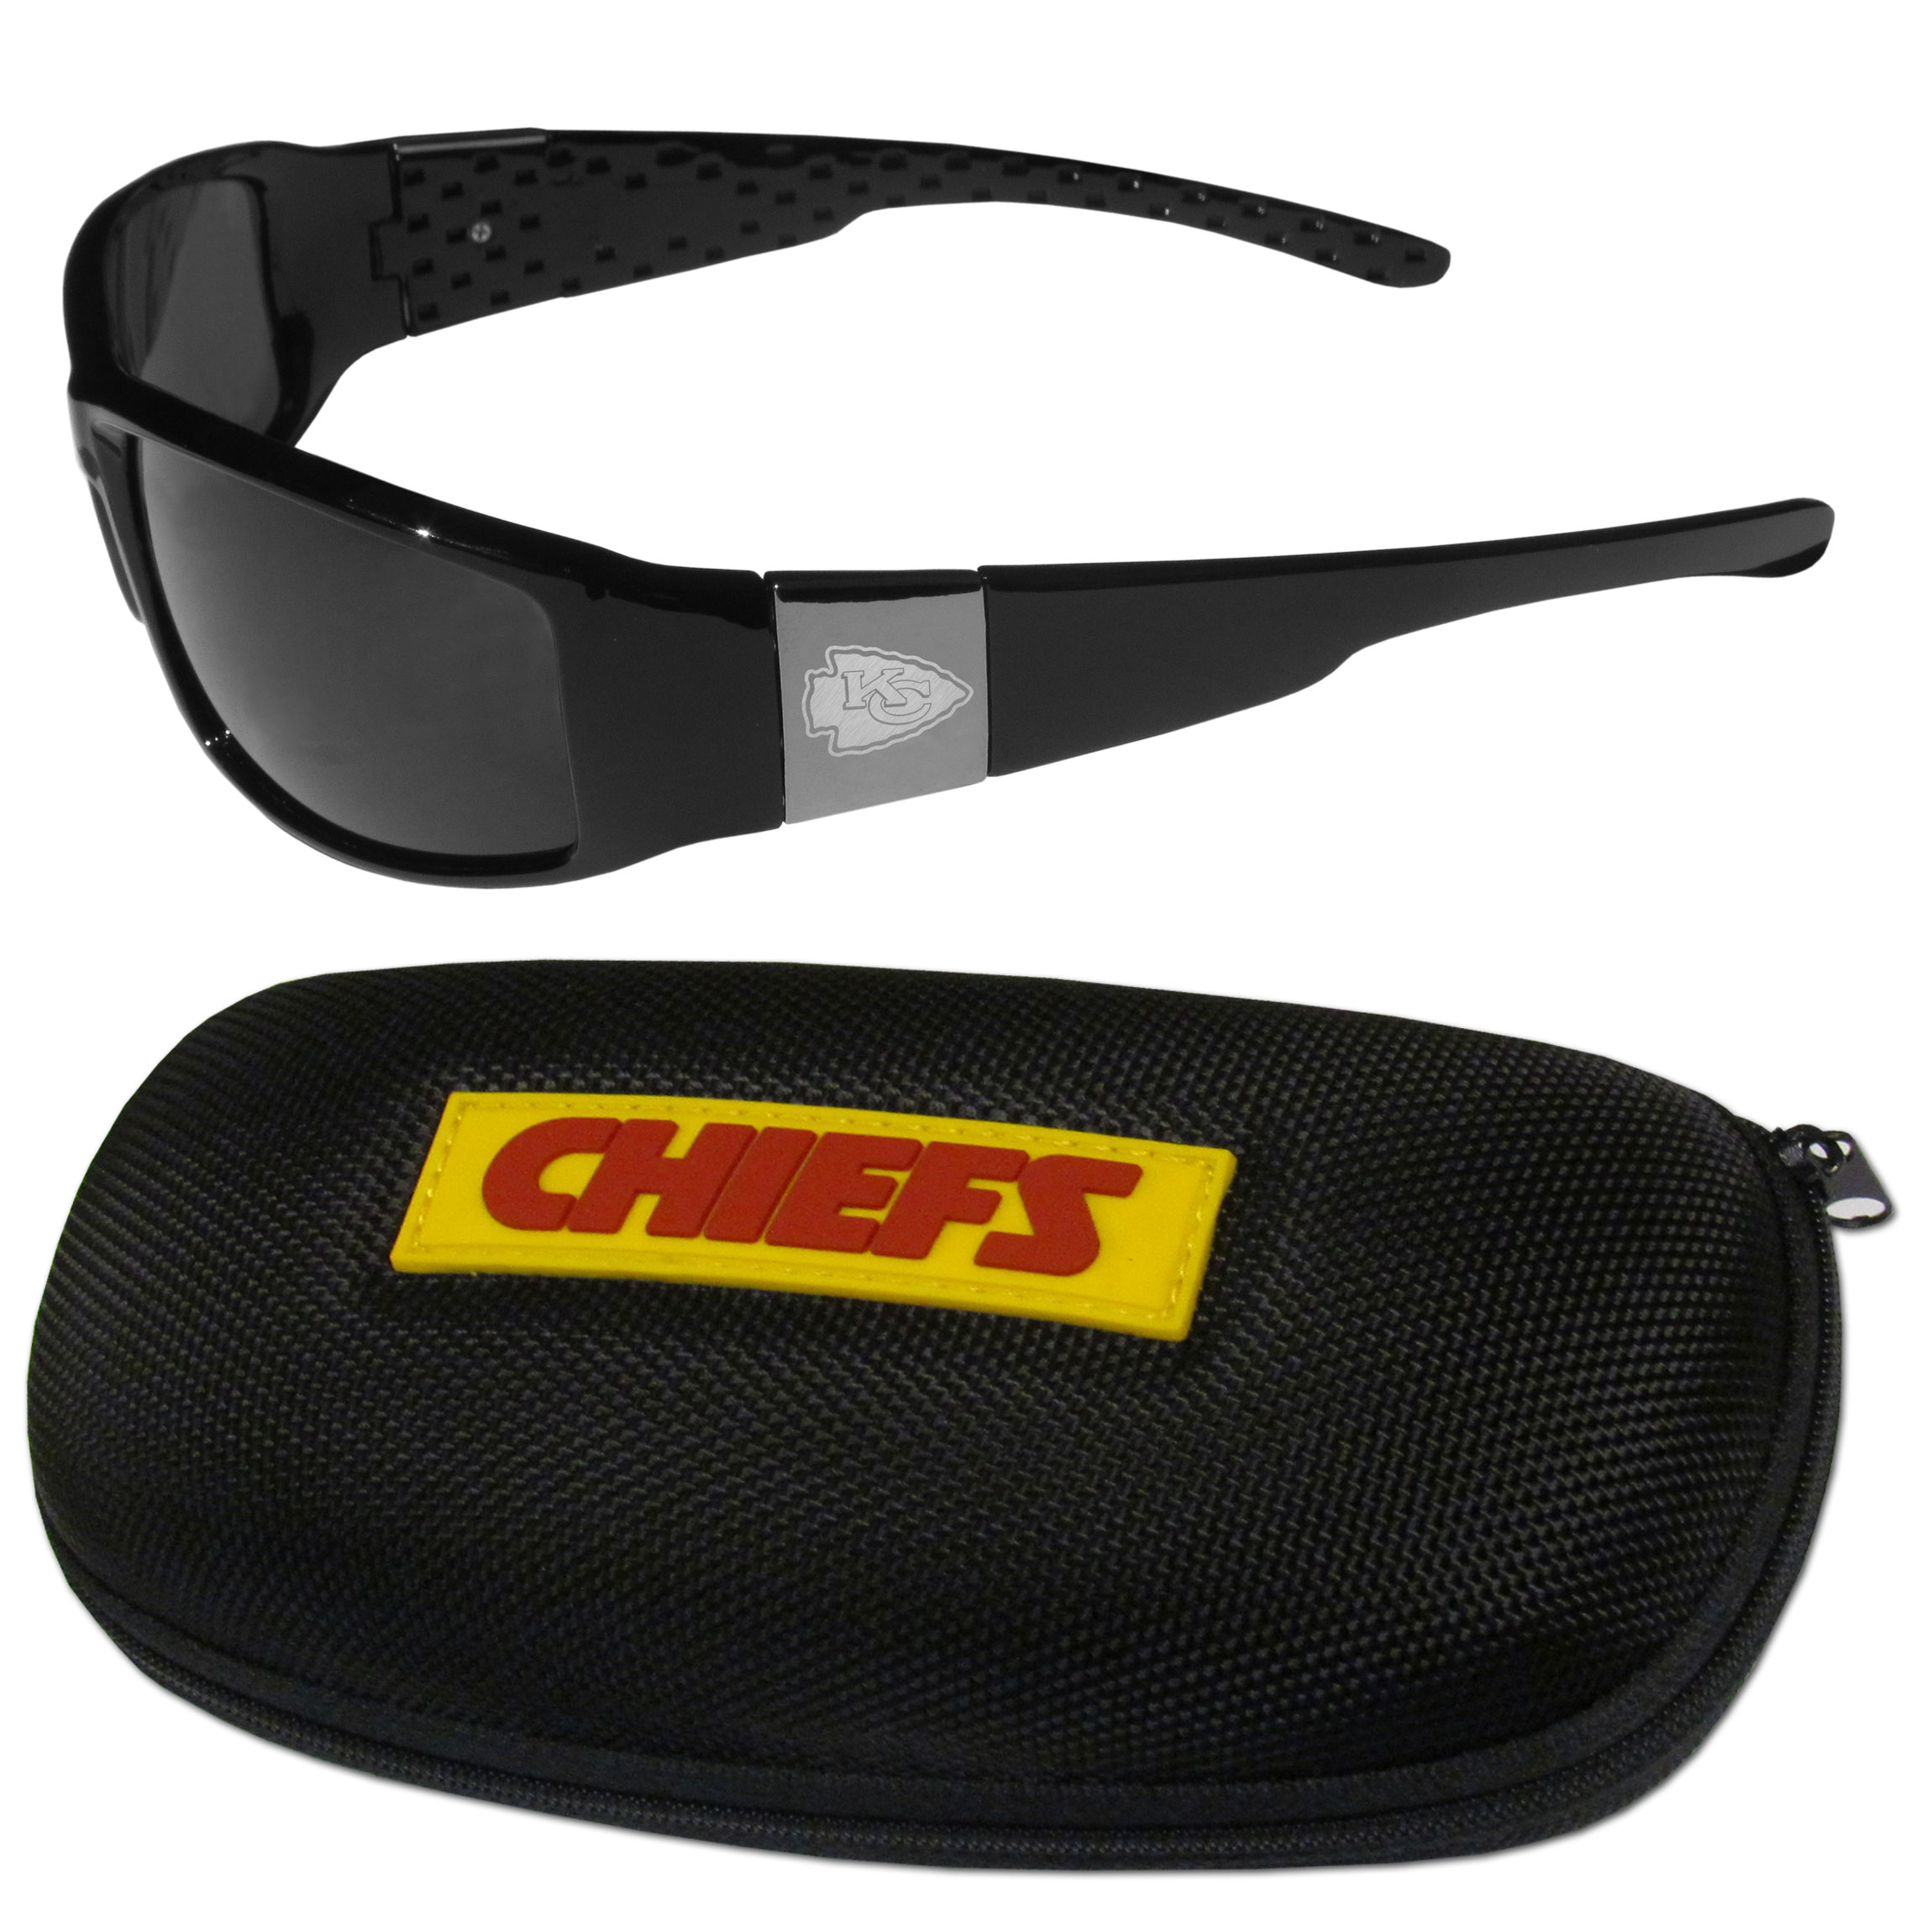 Kansas City Chiefs Chrome Wrap Sunglasses and Zippered Carrying Case - This set includes our sleek and stylish Kansas City Chiefs chrome wrap sunglasses and our hard shell, zippered carrying case. The sunglasses feature etched team logos on each arm and 100% UVA/UVB protection. The case features a large and colorful team emblem.